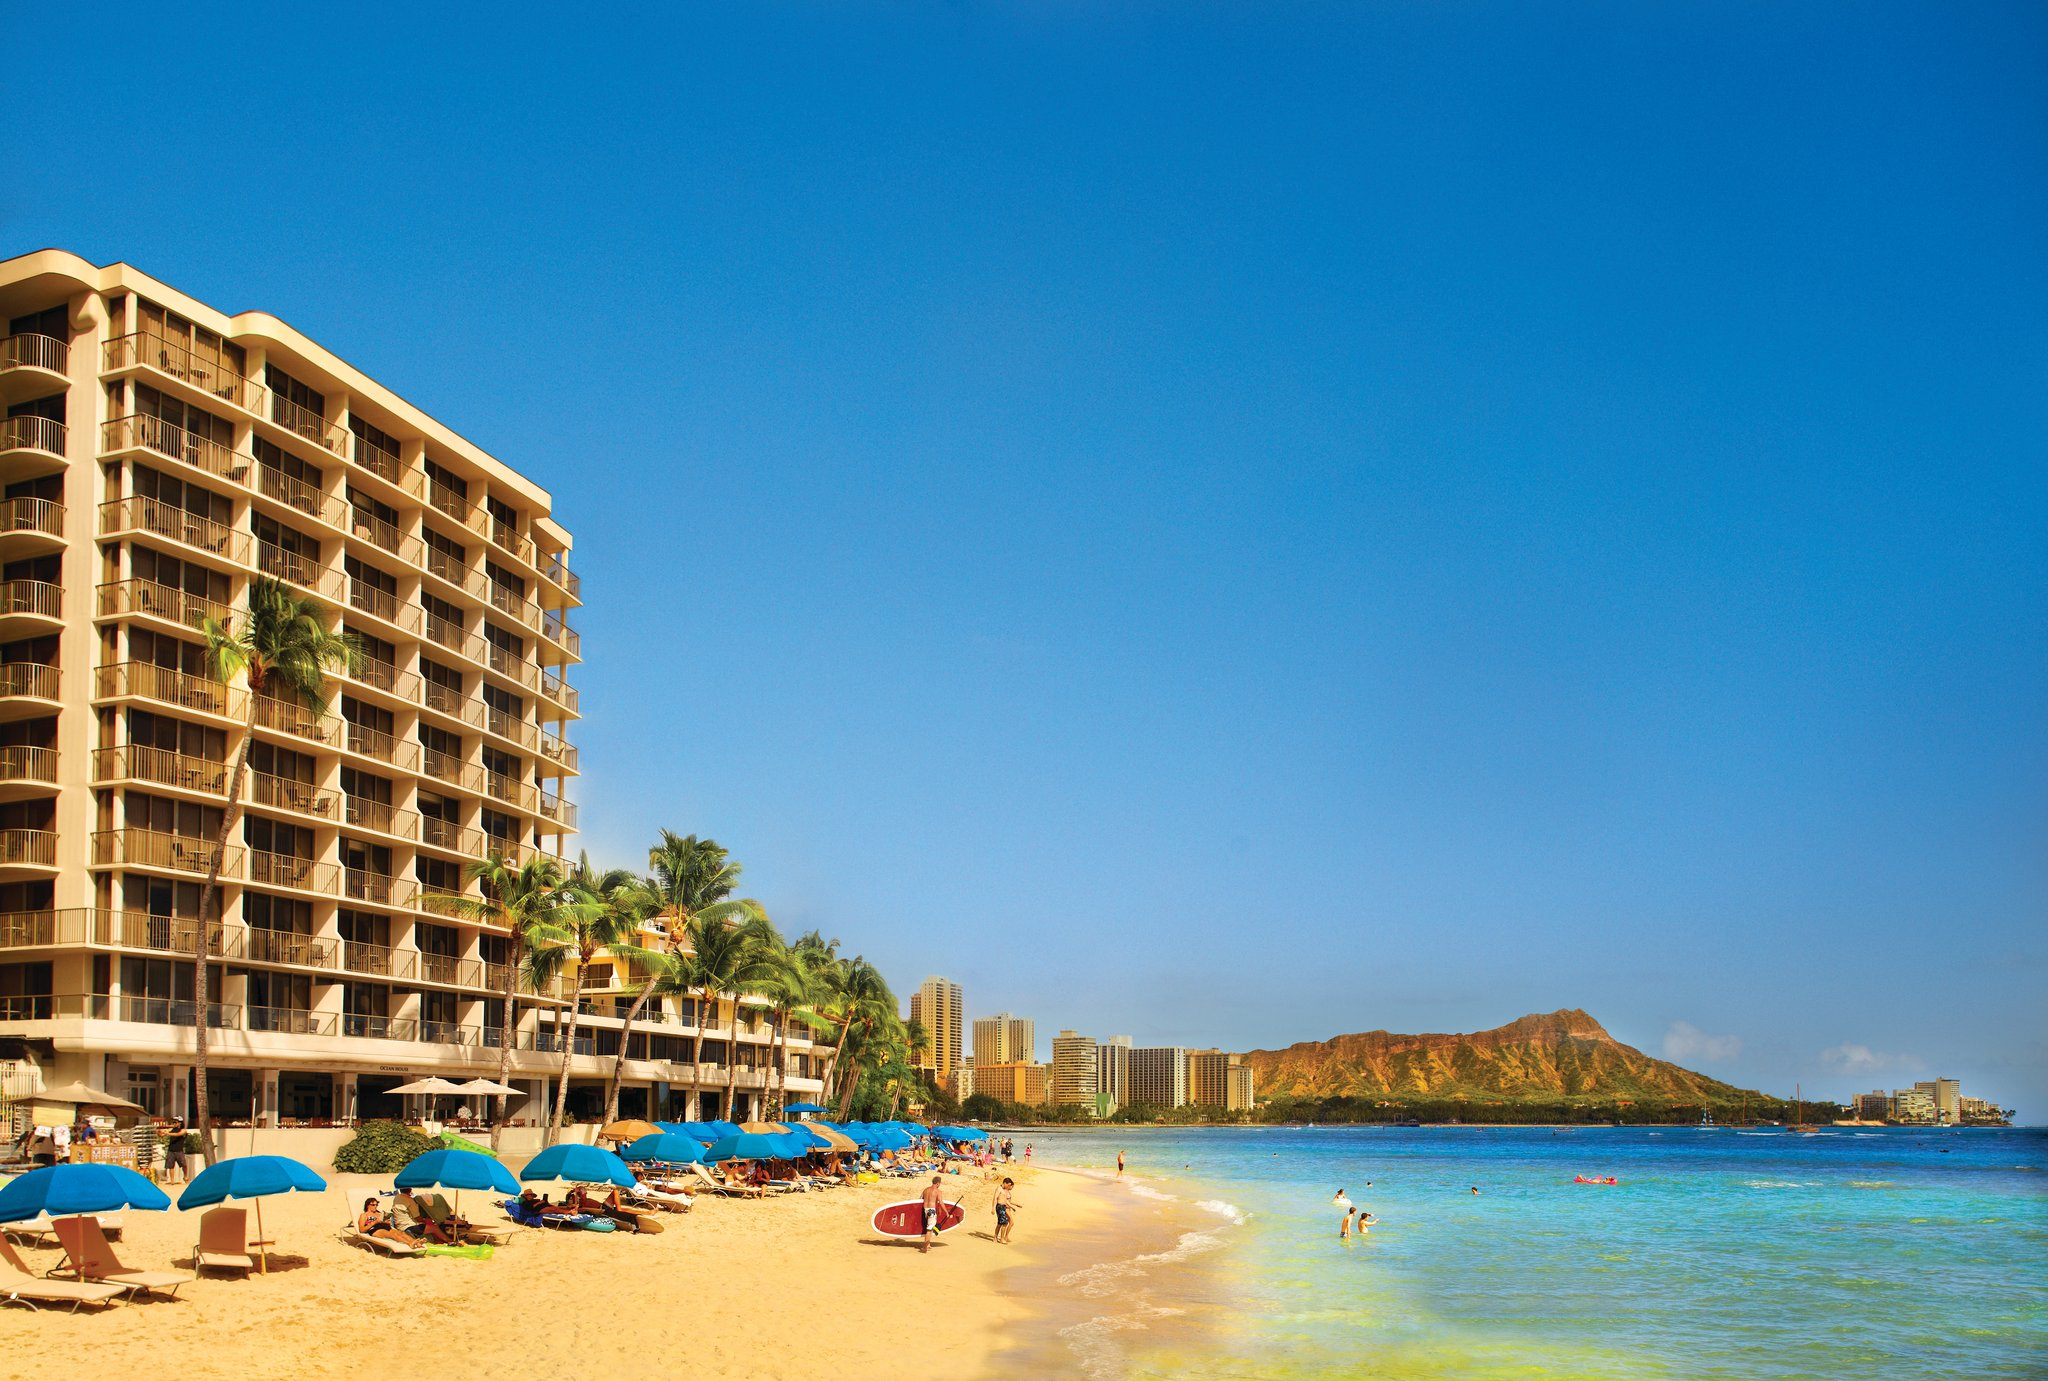 Outrigger Reef Waikiki Beach Resort First Cl Honolulu Hi Hotels Gds Reservation Codes Travel Weekly